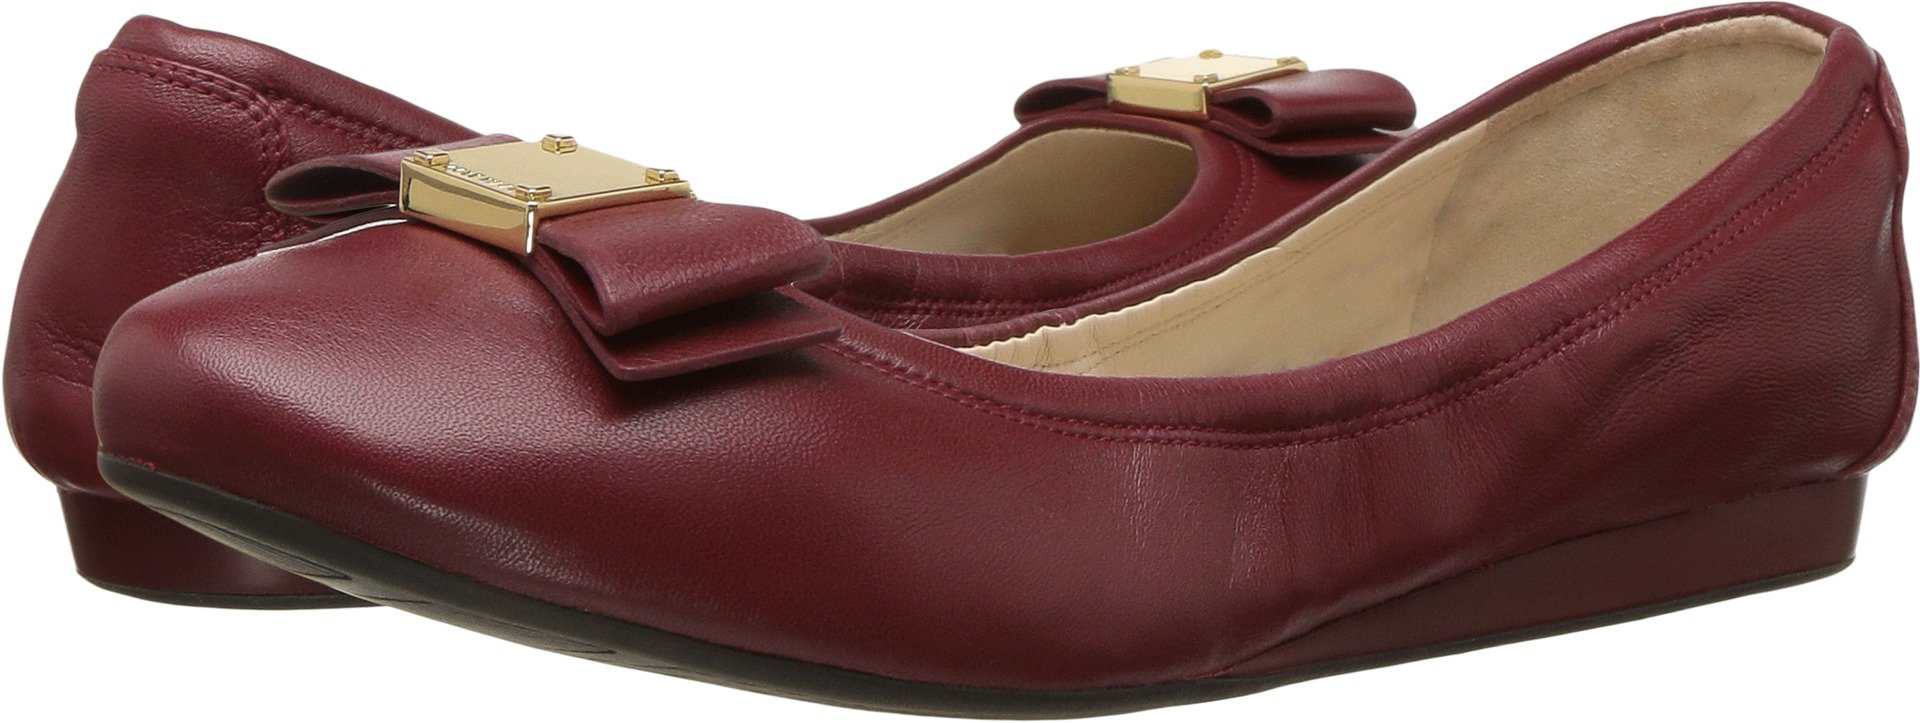 Cole Haan Women's Tali Bow Ballet Sun Dried Tomato Leather Loafer